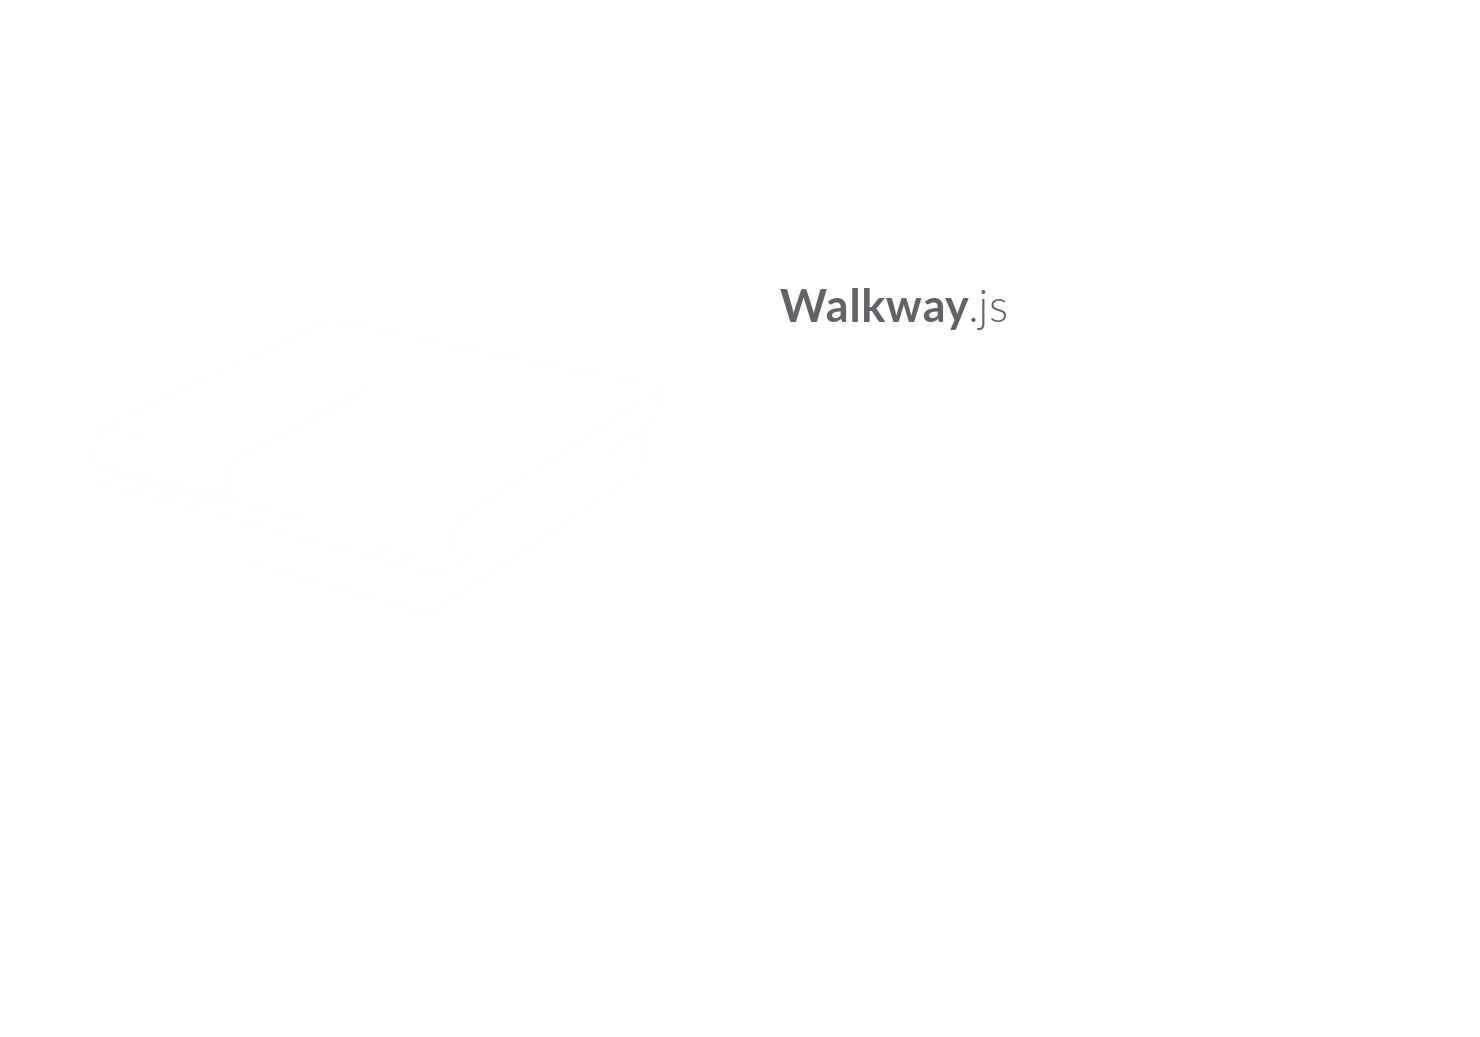 Walkway js - An easy way to animate simple SVG elements